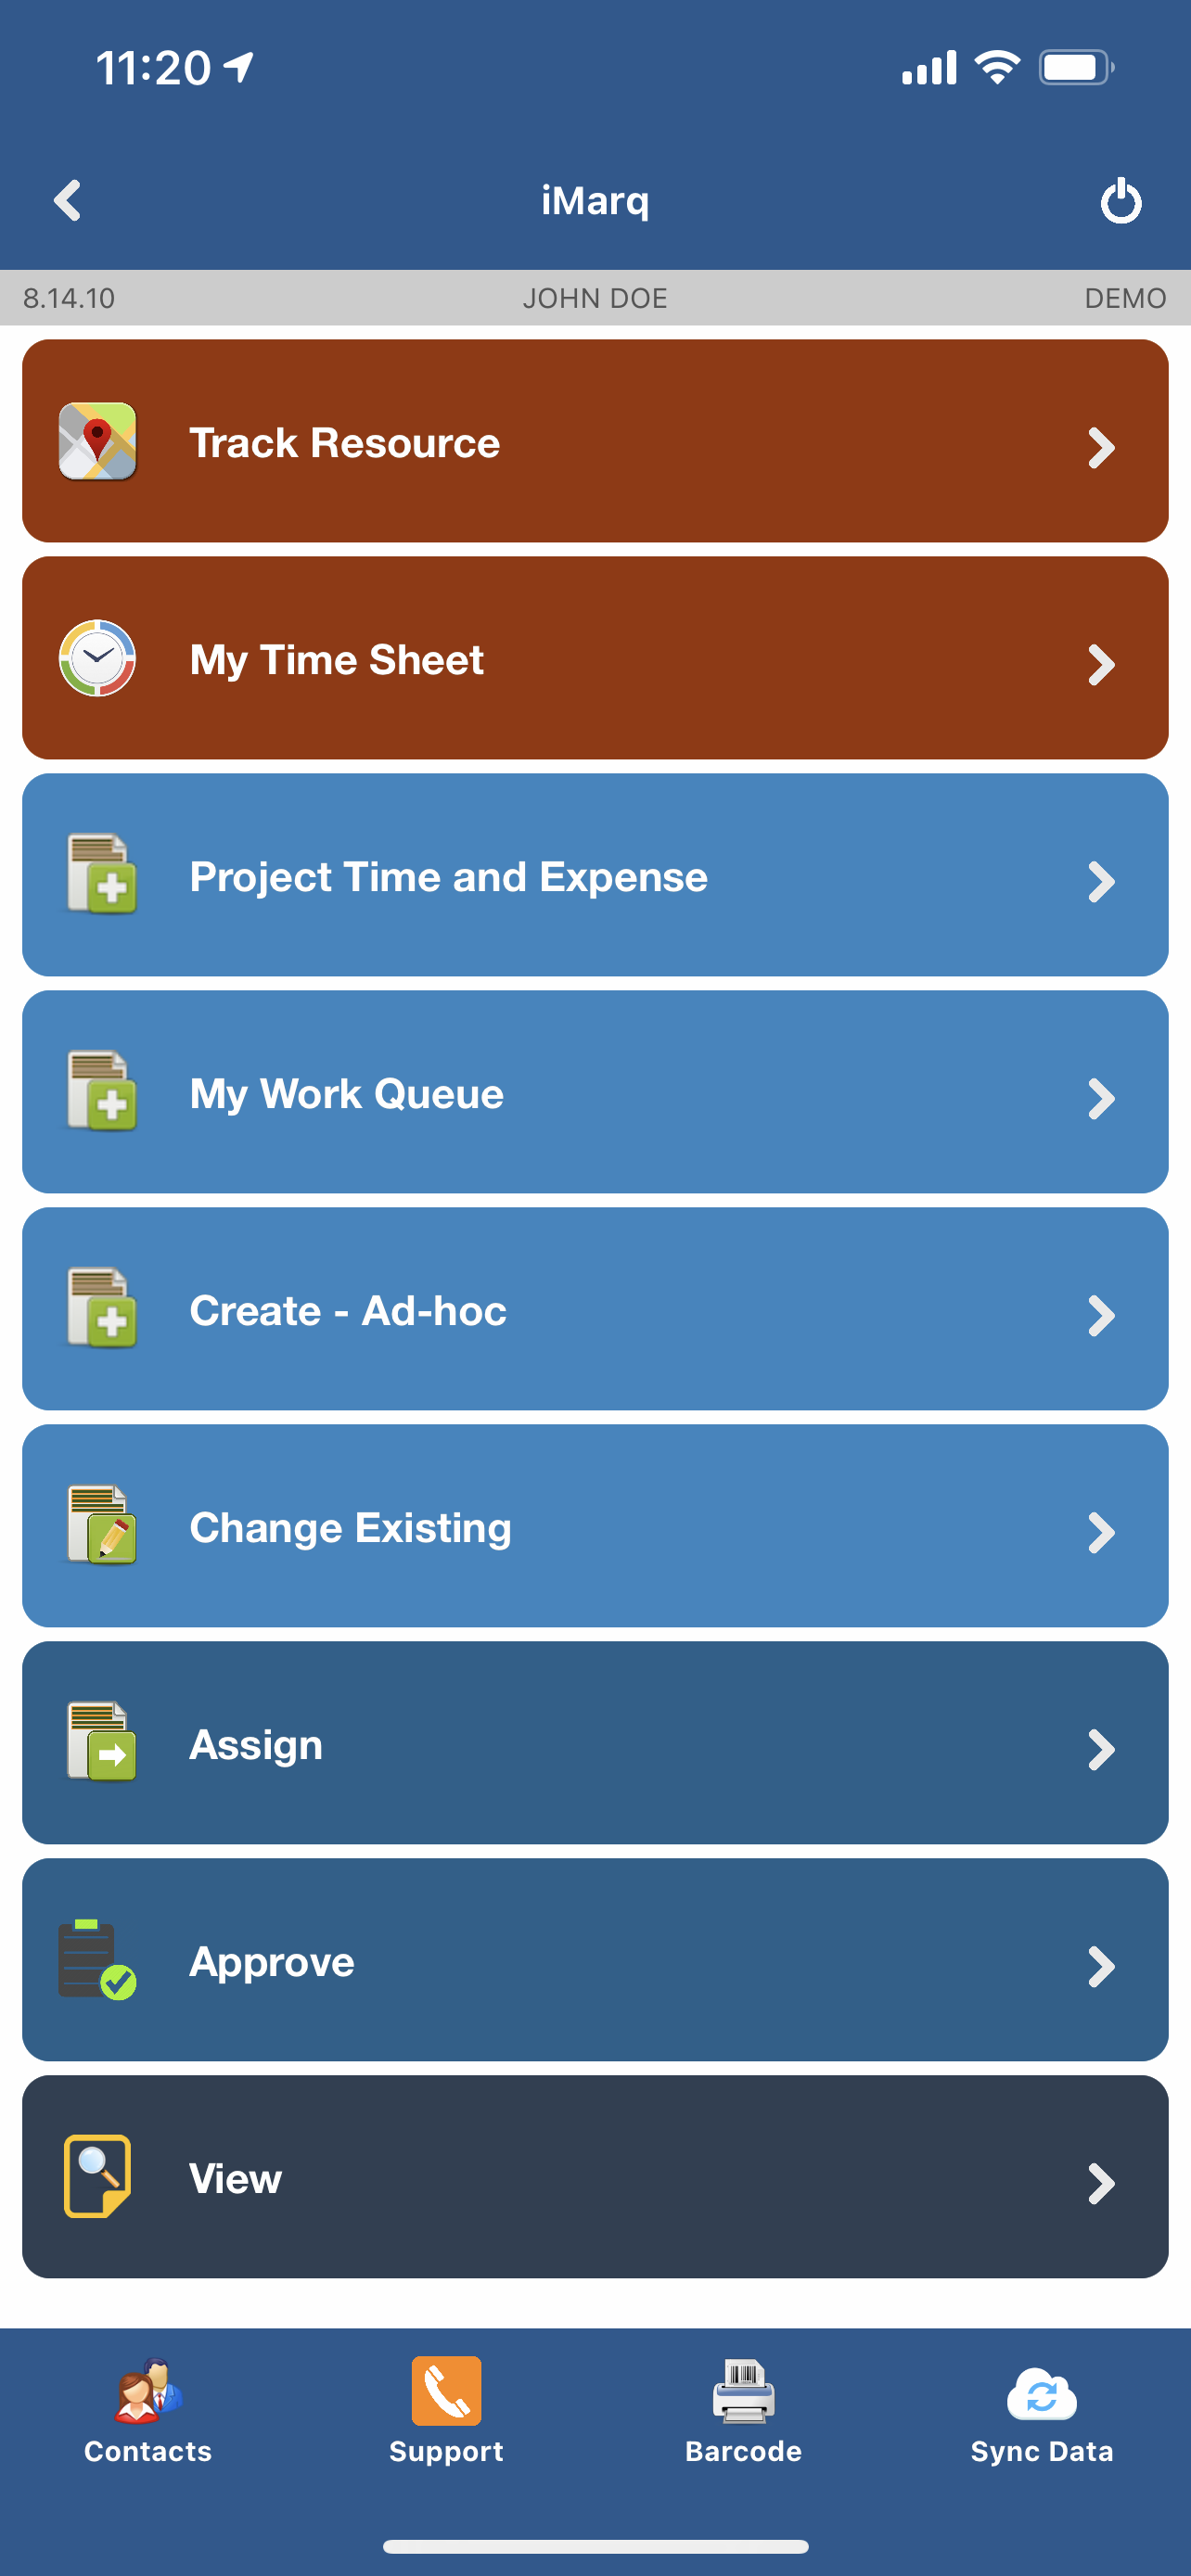 All modules - view; profile driven app ensures that only the relevant modules are available to the user.